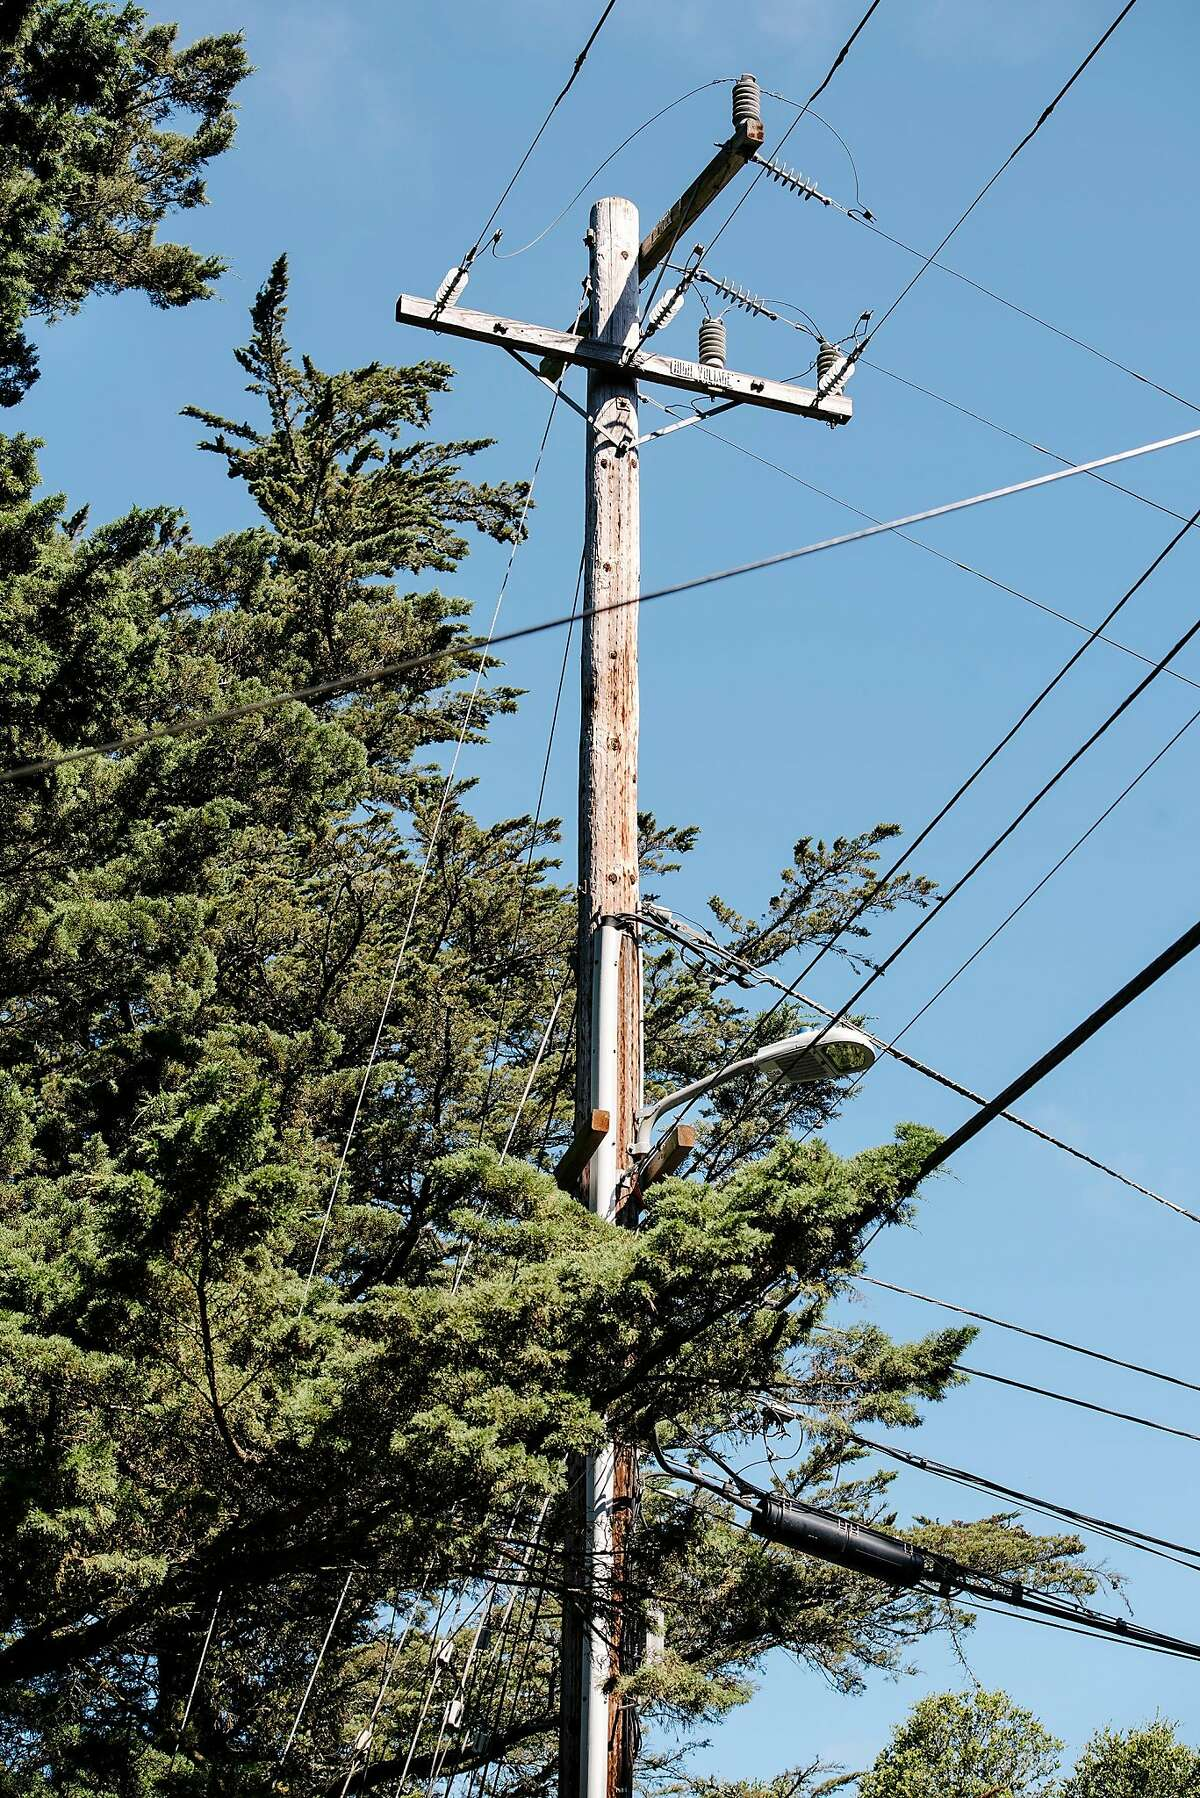 A power pole stands next to trees as work crews from Mowbray's Tree Service, contracted by PG&E to handle vegetation management, prepare to trim back trees along Skyline Blvd. in Oakland, CA on June 26th, 2019.